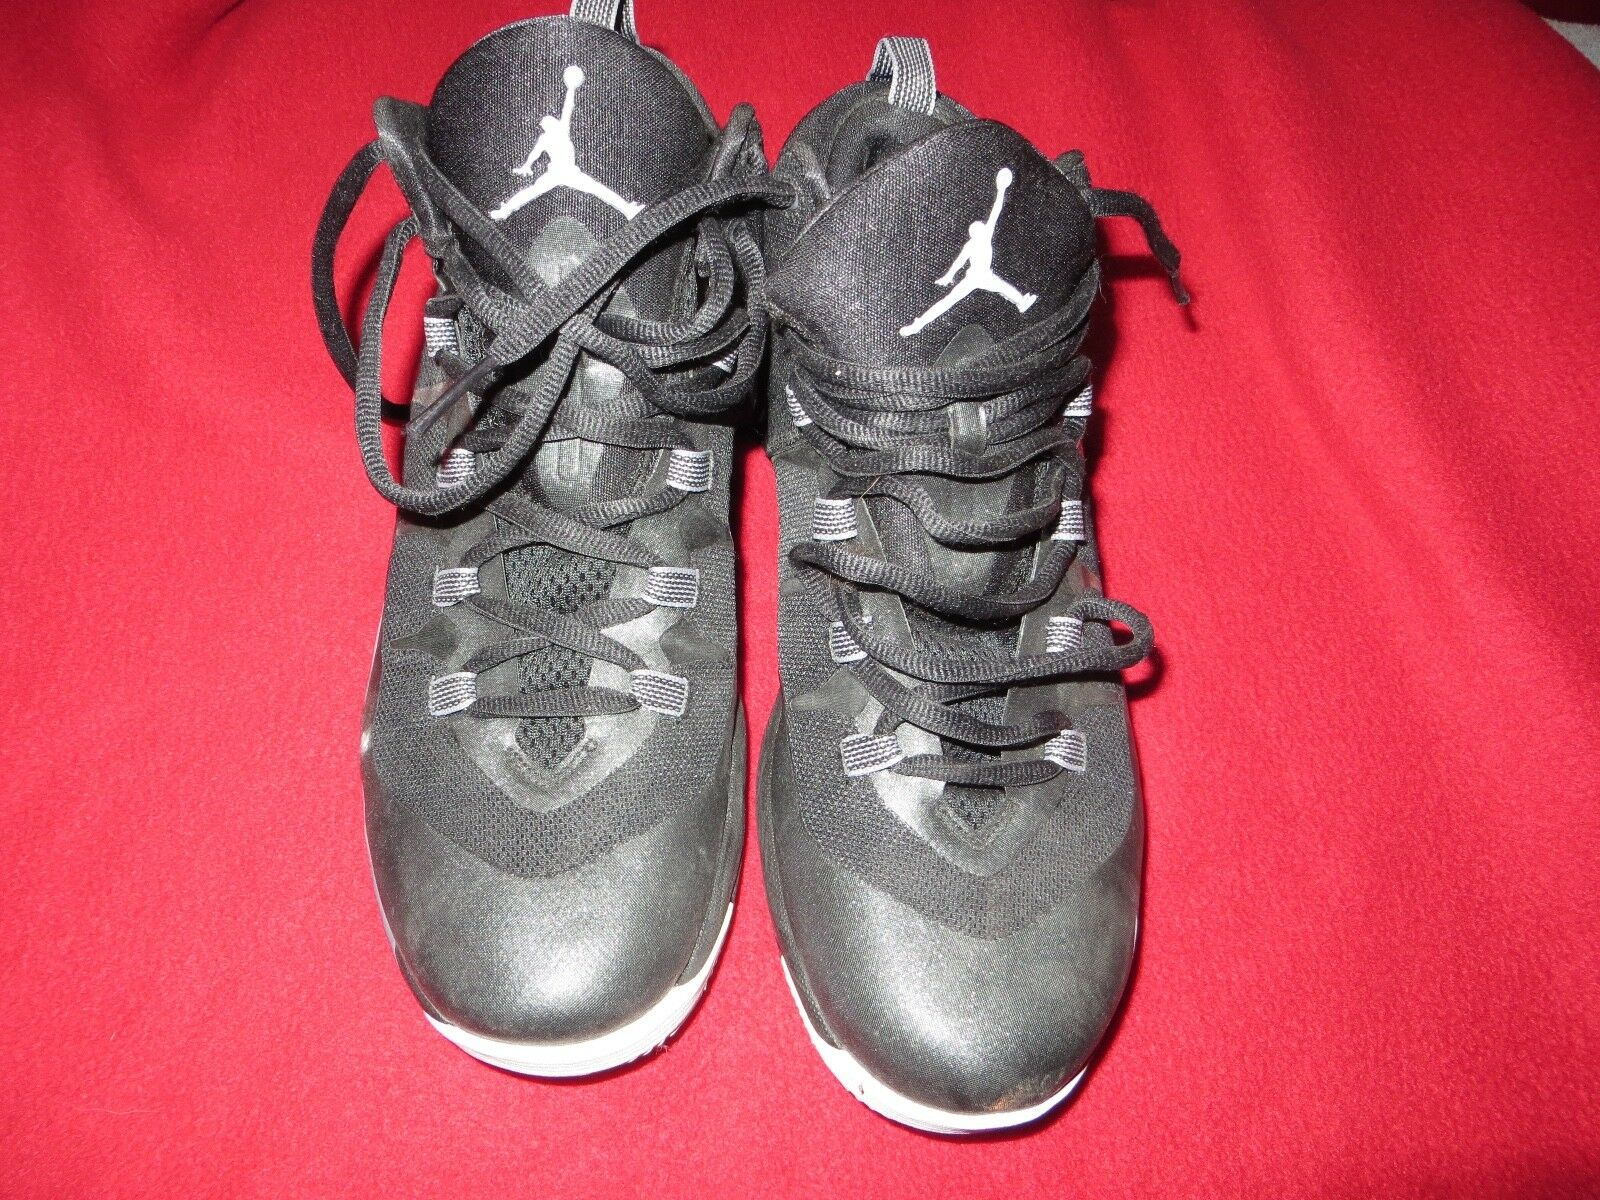 Nike Nike Nike Jordan Super.Fly 2  Black Basketball Casual shoes 599945-003 Size 9 4ea62c